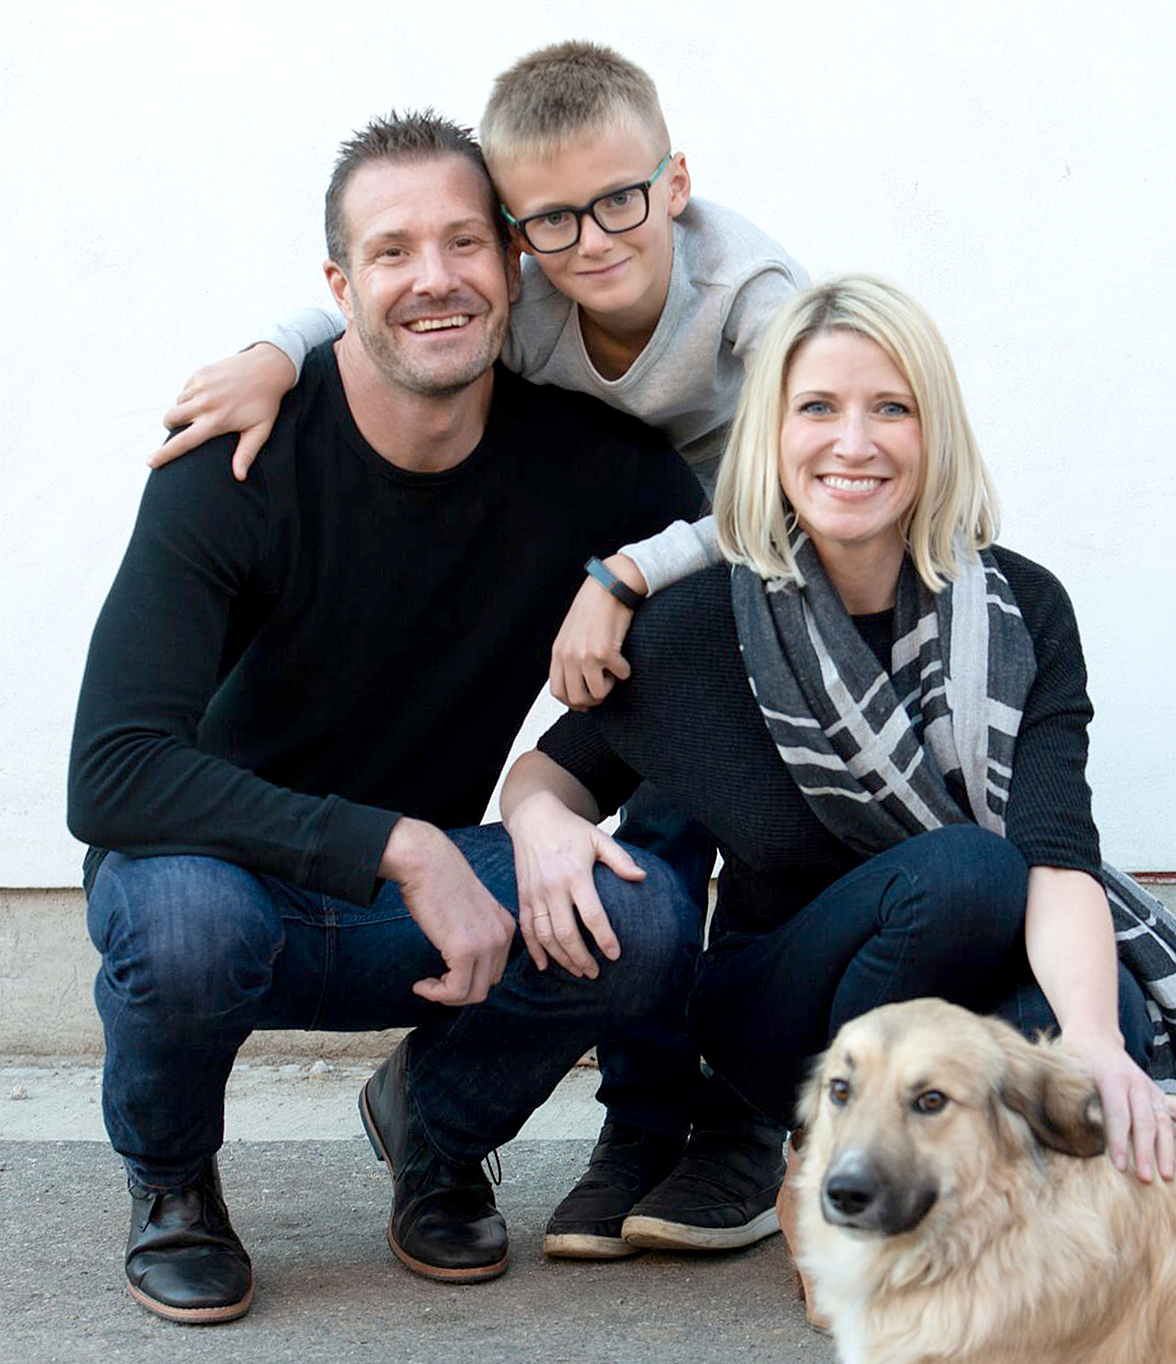 Jamie with her husband Chris, her 8-year old stepson Jackson, and their dog Bru